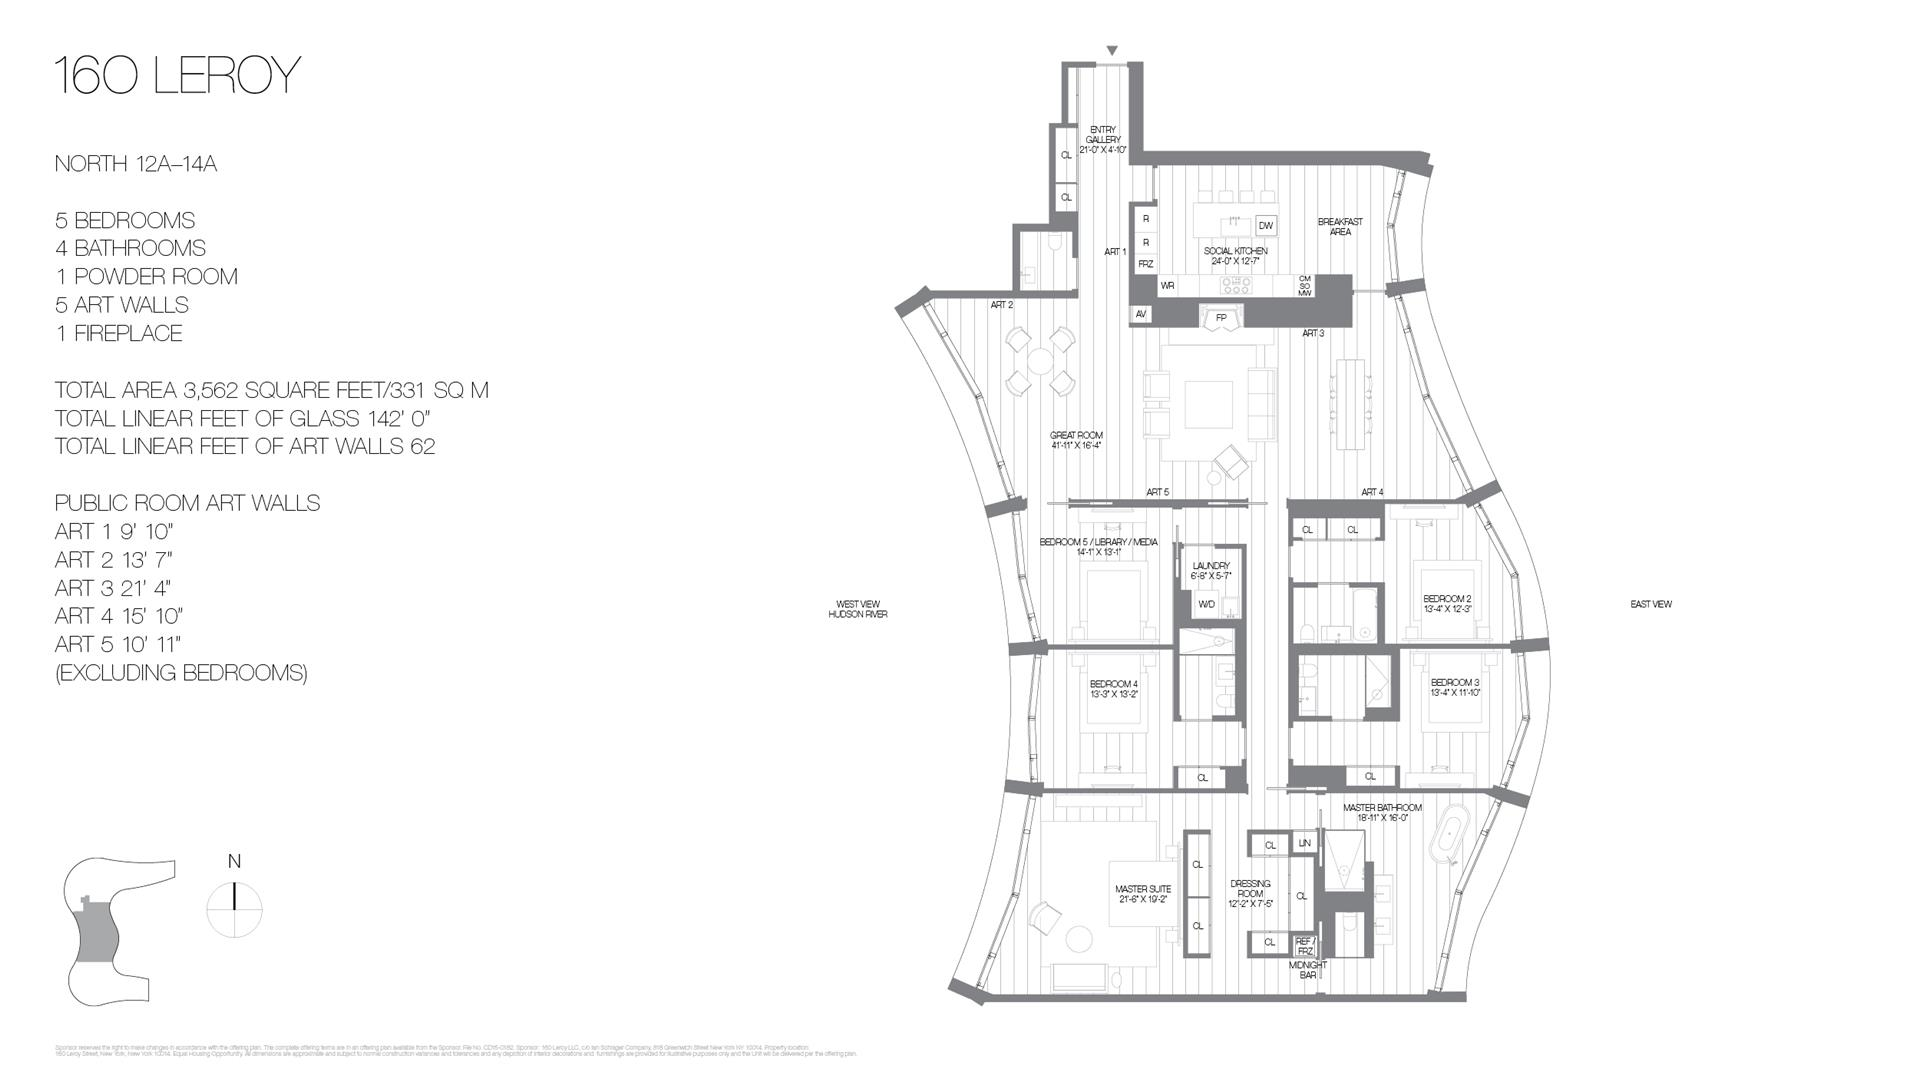 Floor plan of 160 Leroy St, NORTH14A - West Village - Meatpacking District, New York